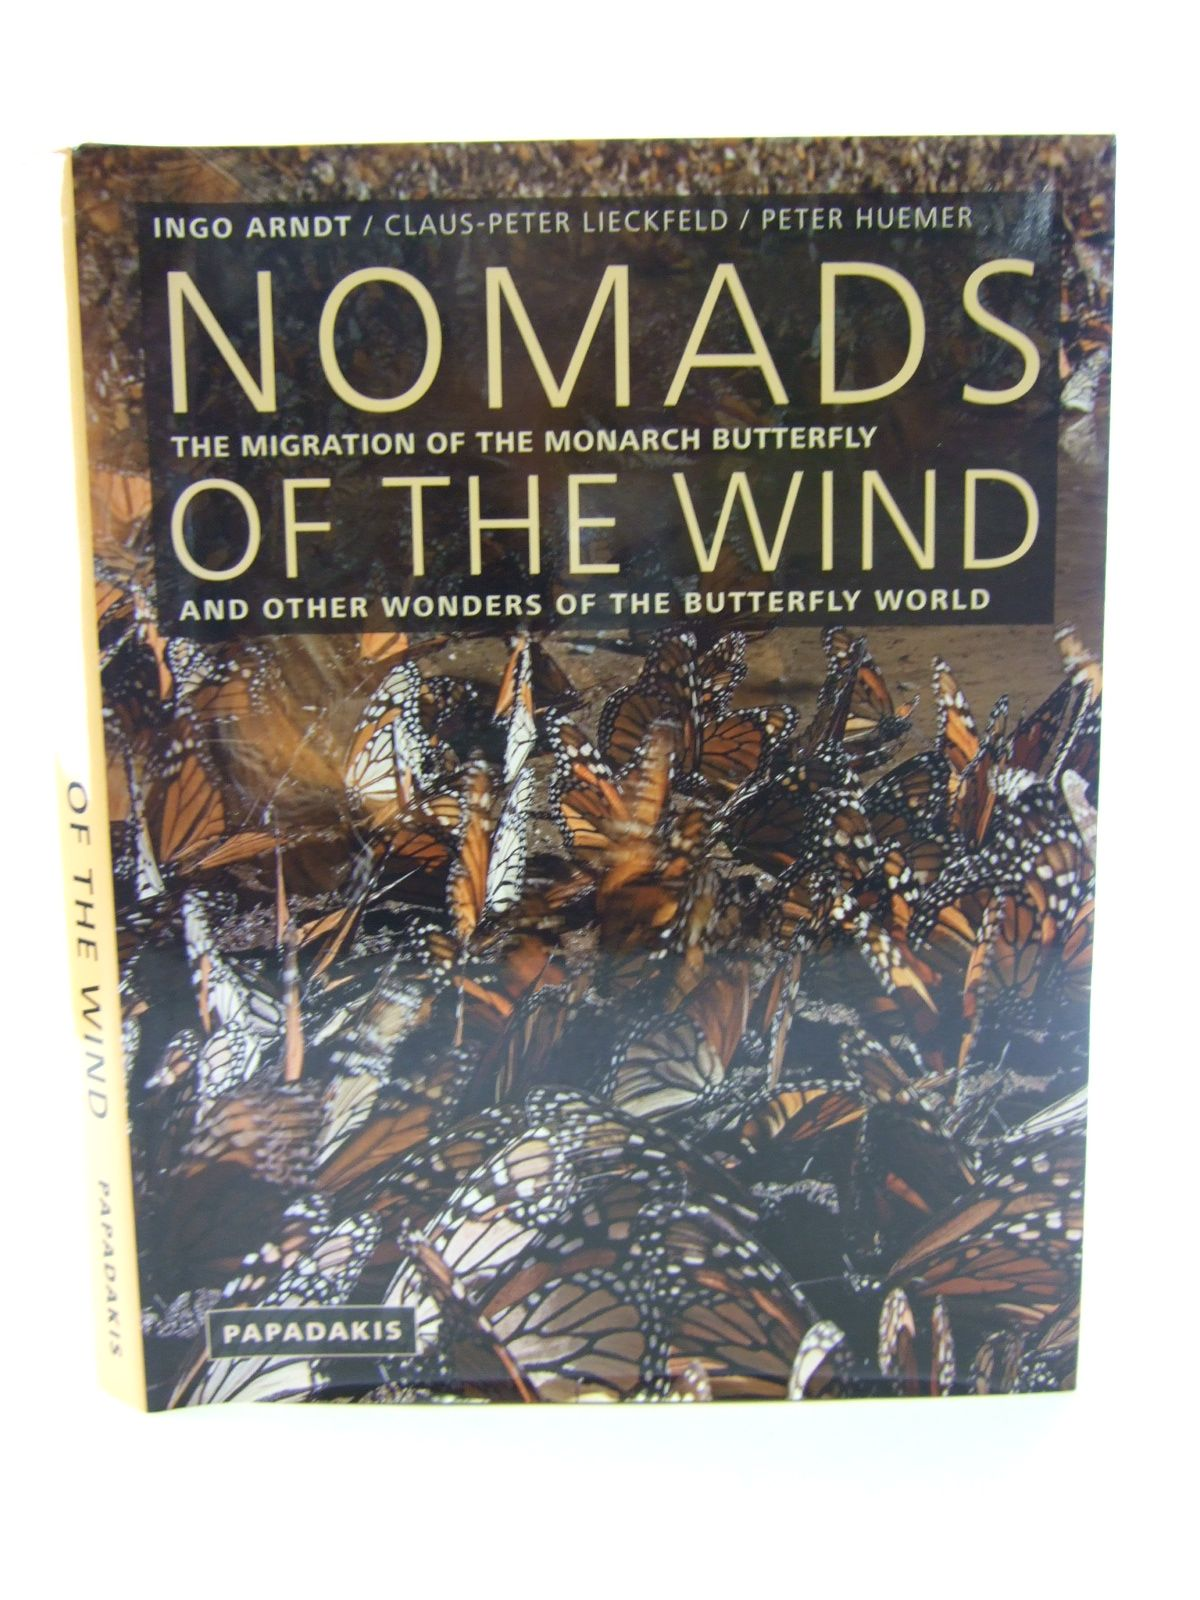 Photo of NOMADS OF THE WIND THE MIGRATION OF THE MONARCH BUTTERFLY AND OTHER WONDERS OF THE BUTTERFLY WORLD written by Arndt, Ingo Lieckfeld, Claus-Peter Huemer, Peter published by Papadakis (STOCK CODE: 1805386)  for sale by Stella & Rose's Books